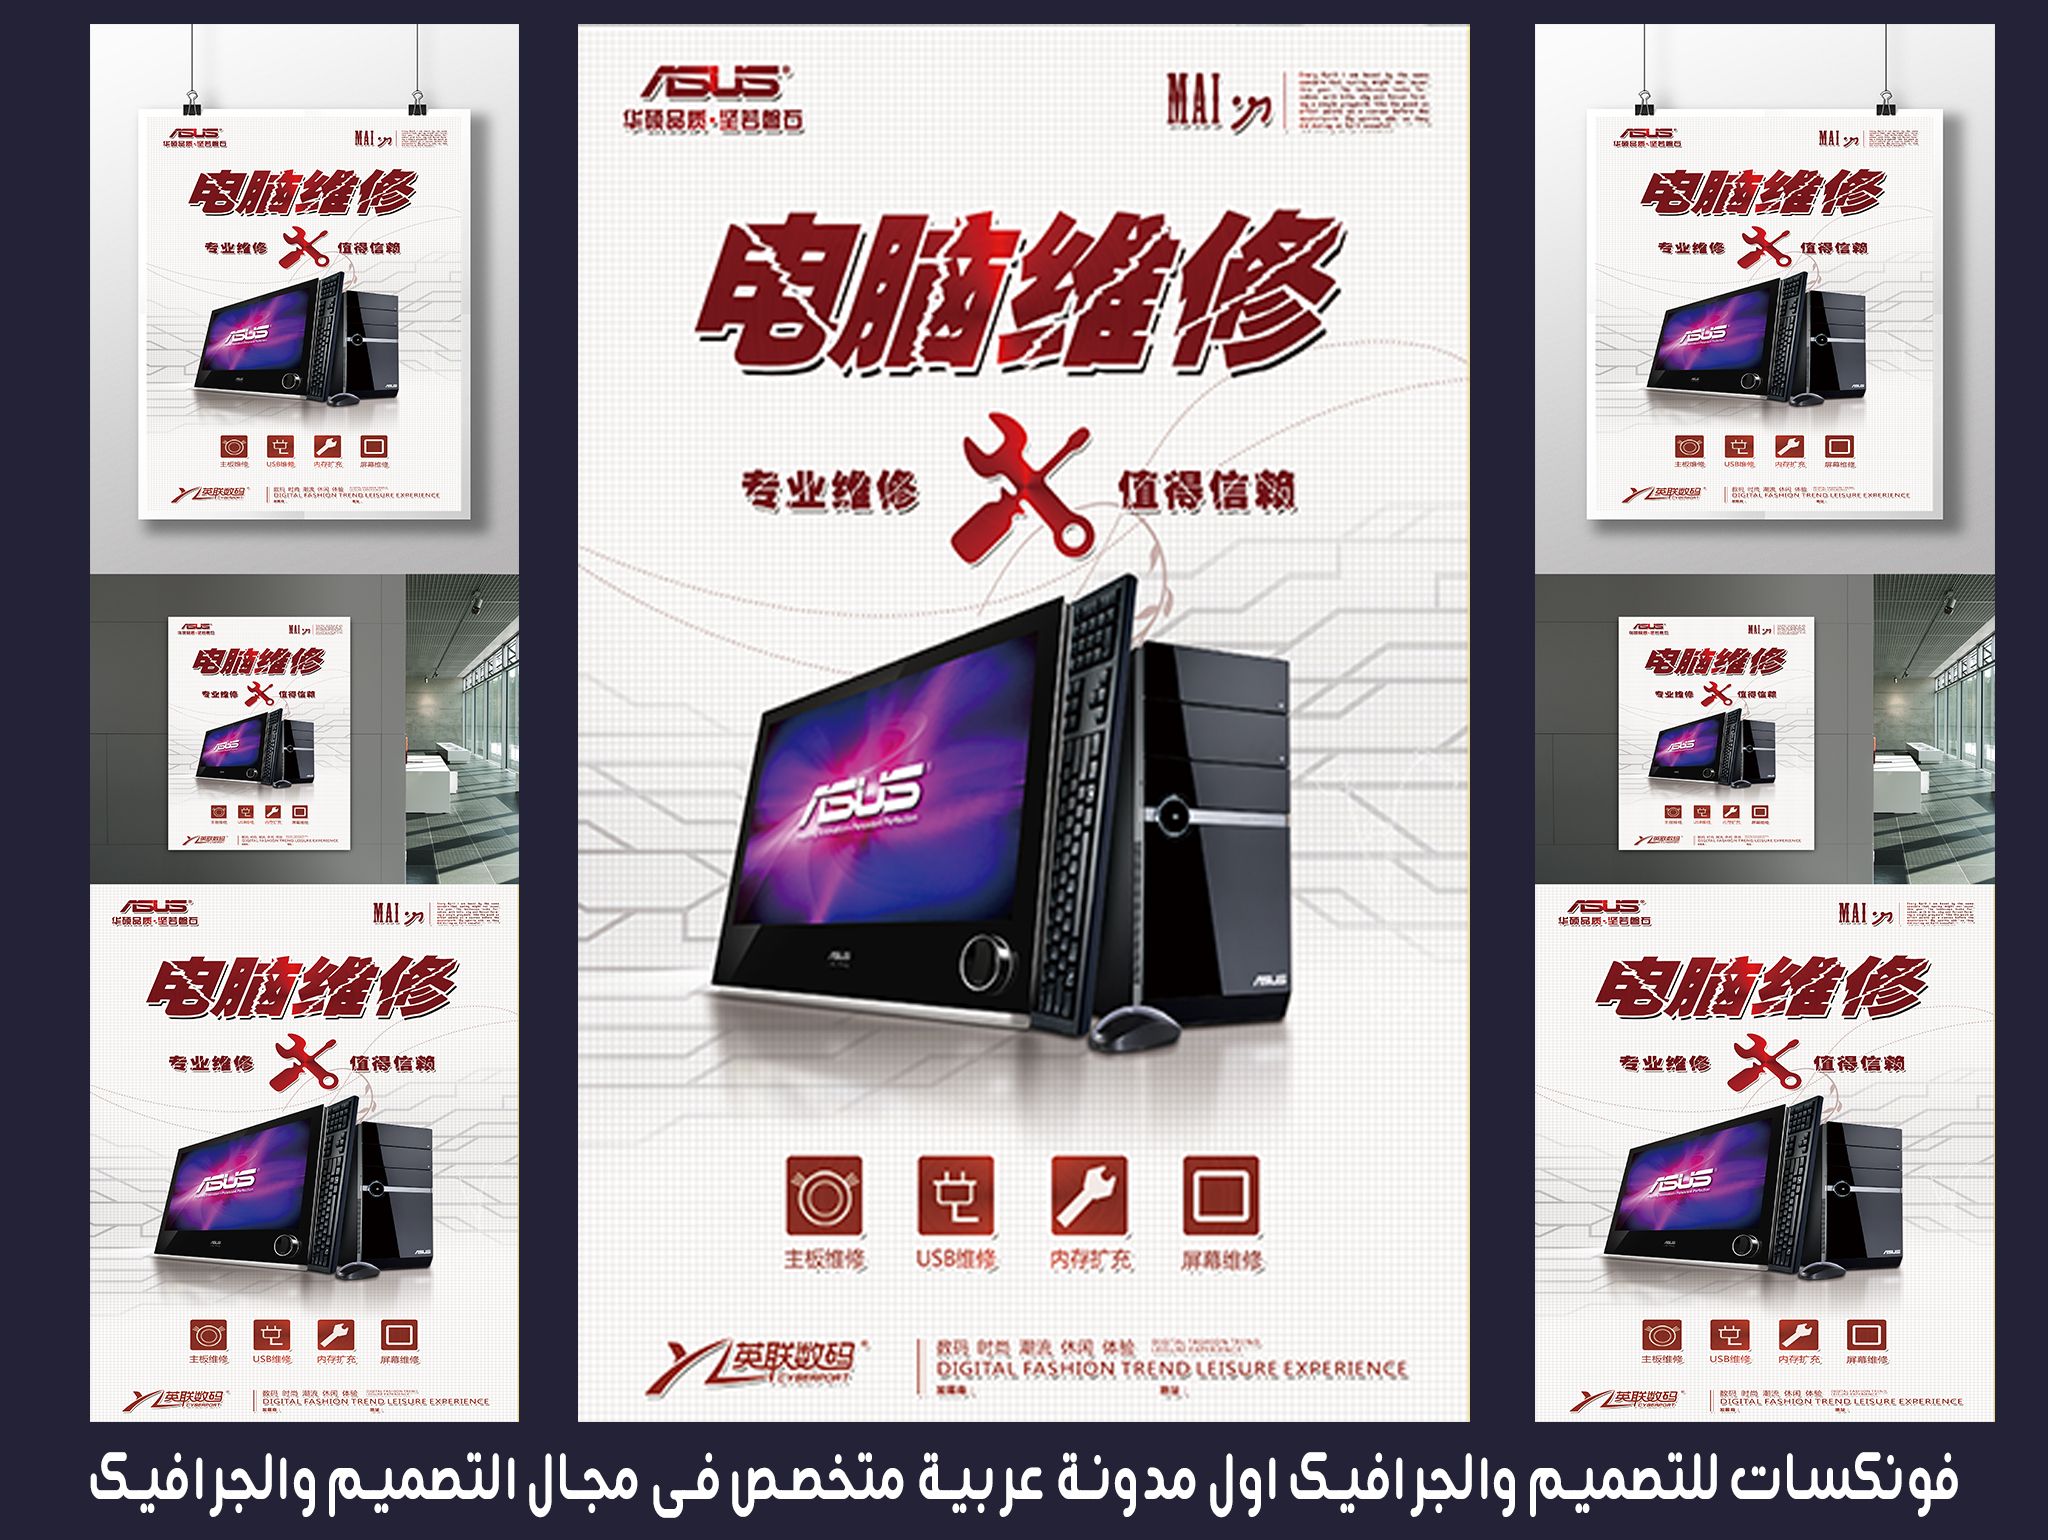 Psd file for poster and flyer for computer and laptop store